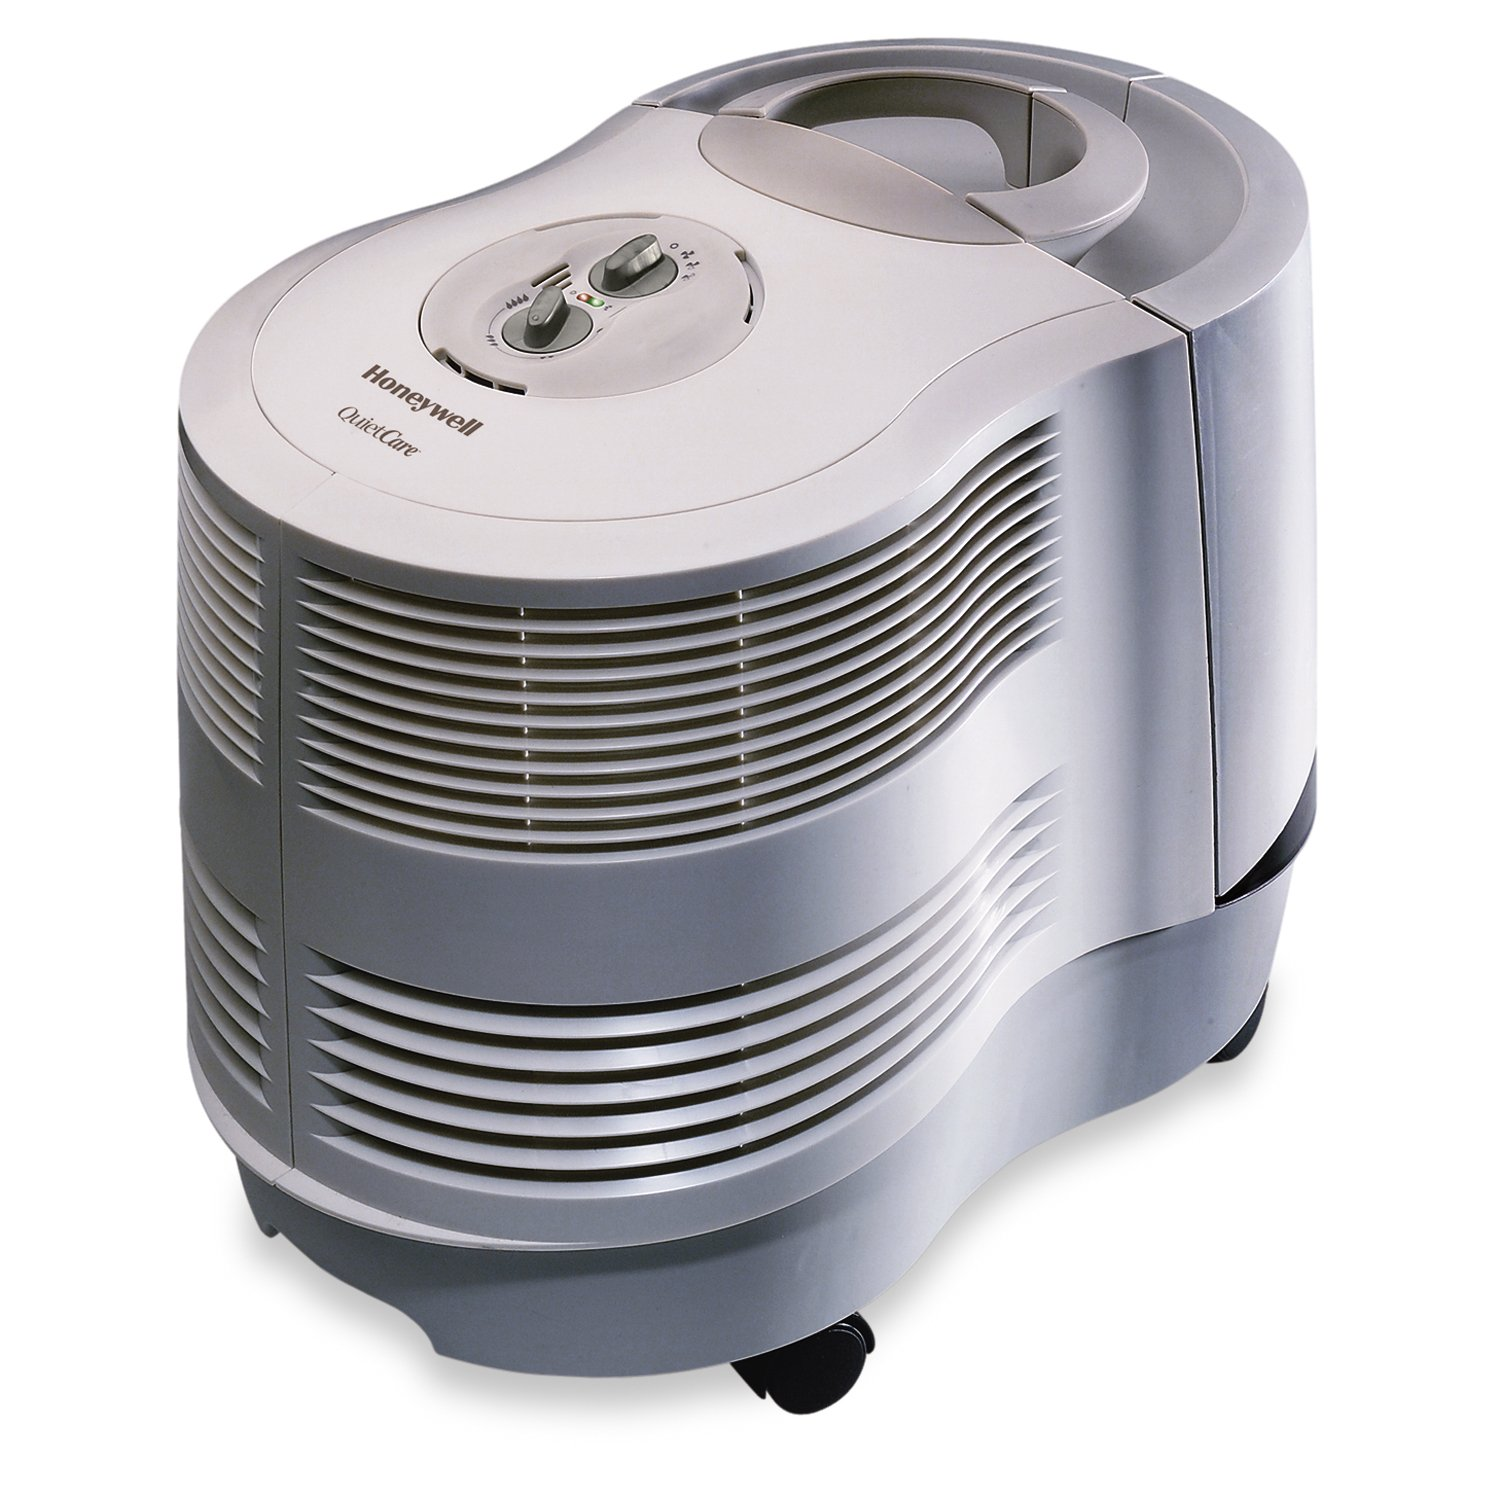 Amazon.com: Honeywell Cool Moisture Console Humidifier: Home & Kitchen